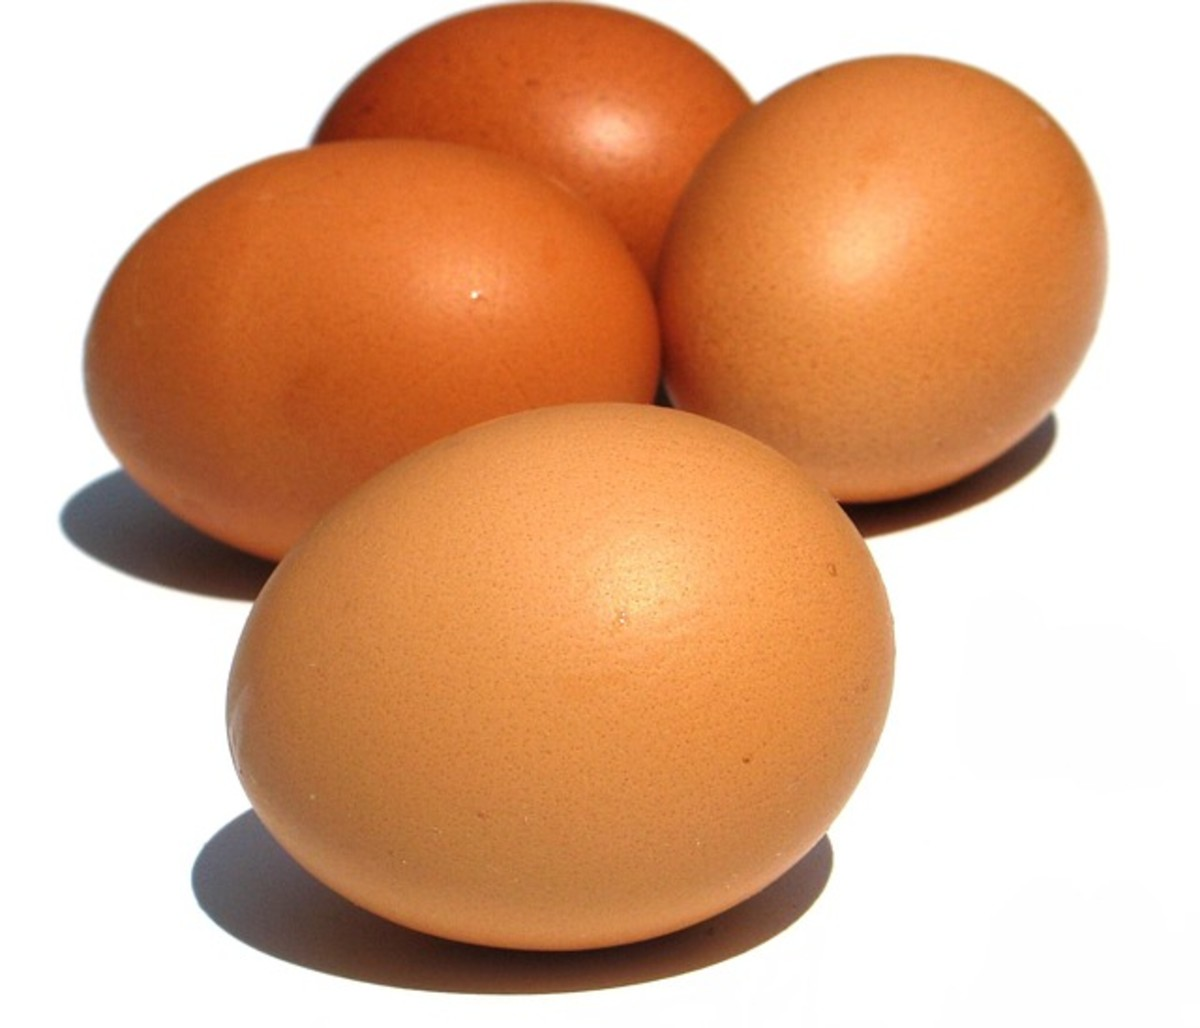 Egg whites are a great option to help clear skin.